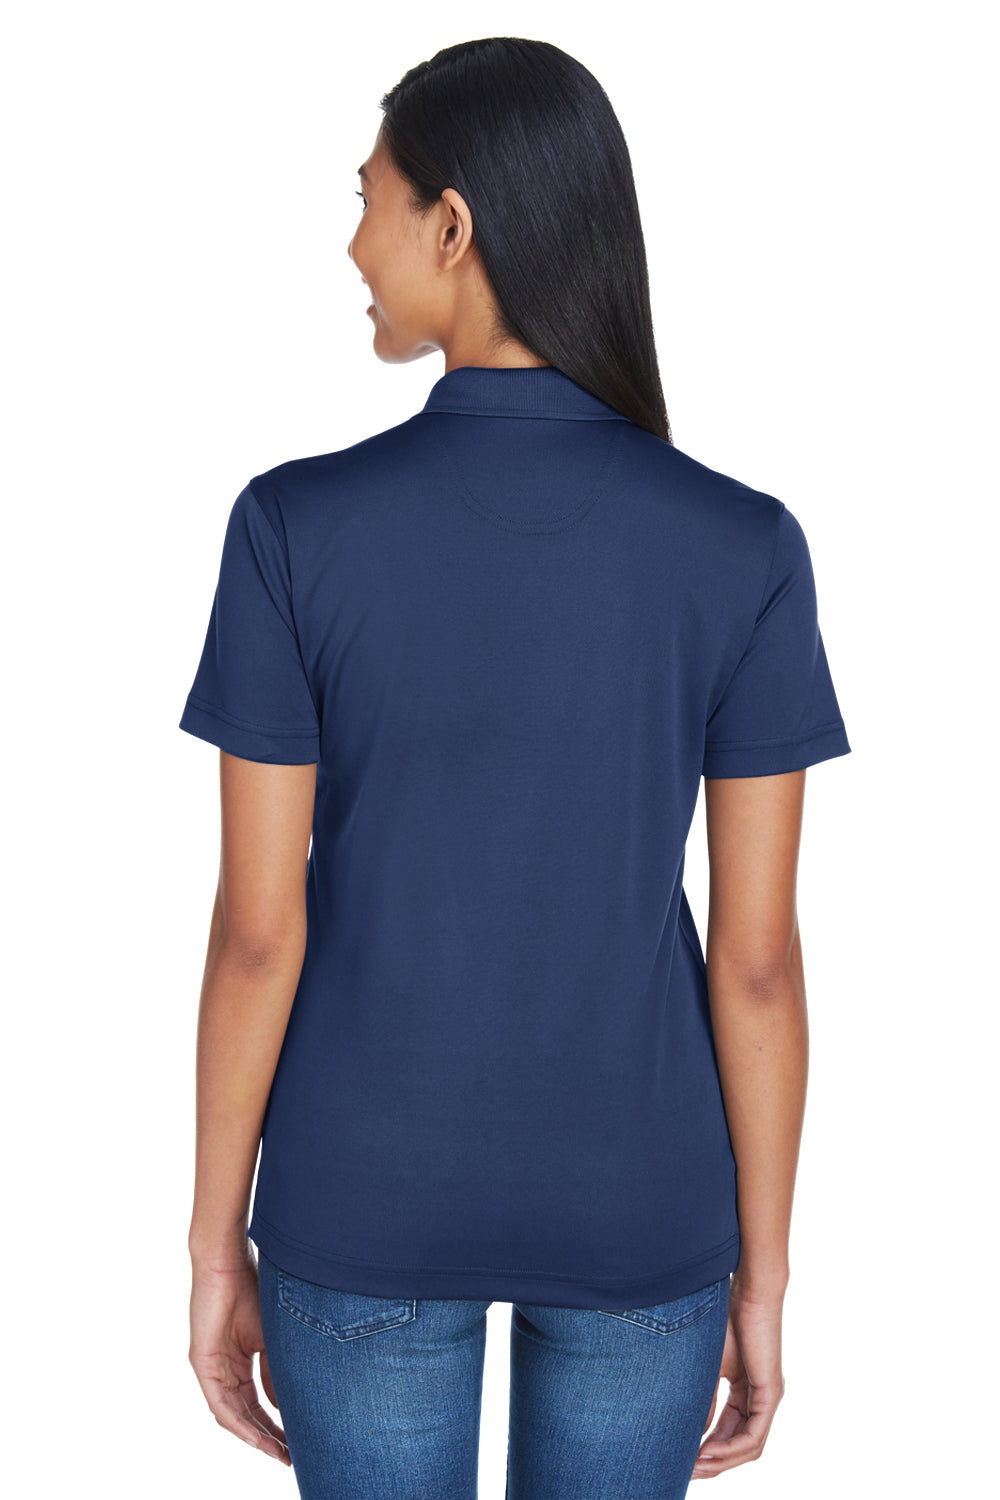 UltraClub 8404 Womens Cool & Dry Moisture Wicking Short Sleeve Polo Shirt Navy Blue Back